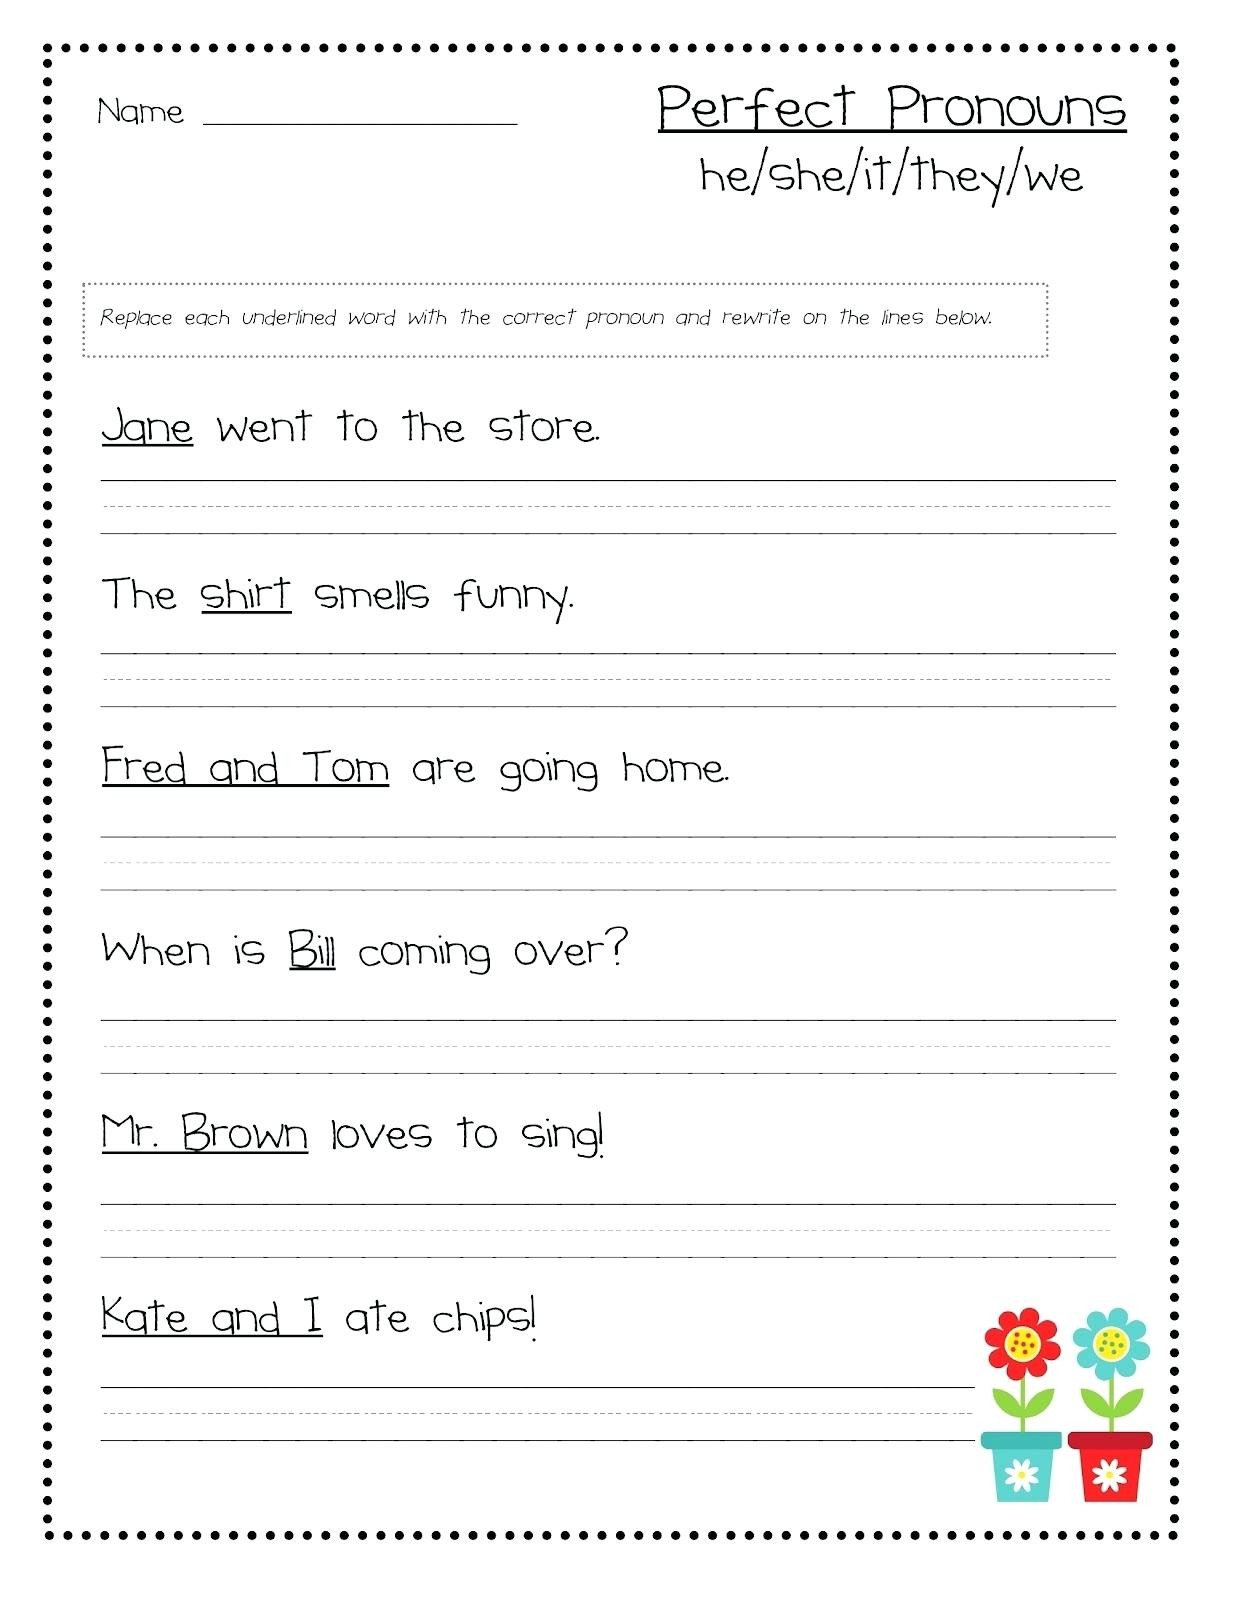 Pronoun Worksheets for 2nd Graders Pronoun Worksheets Fourth Grade